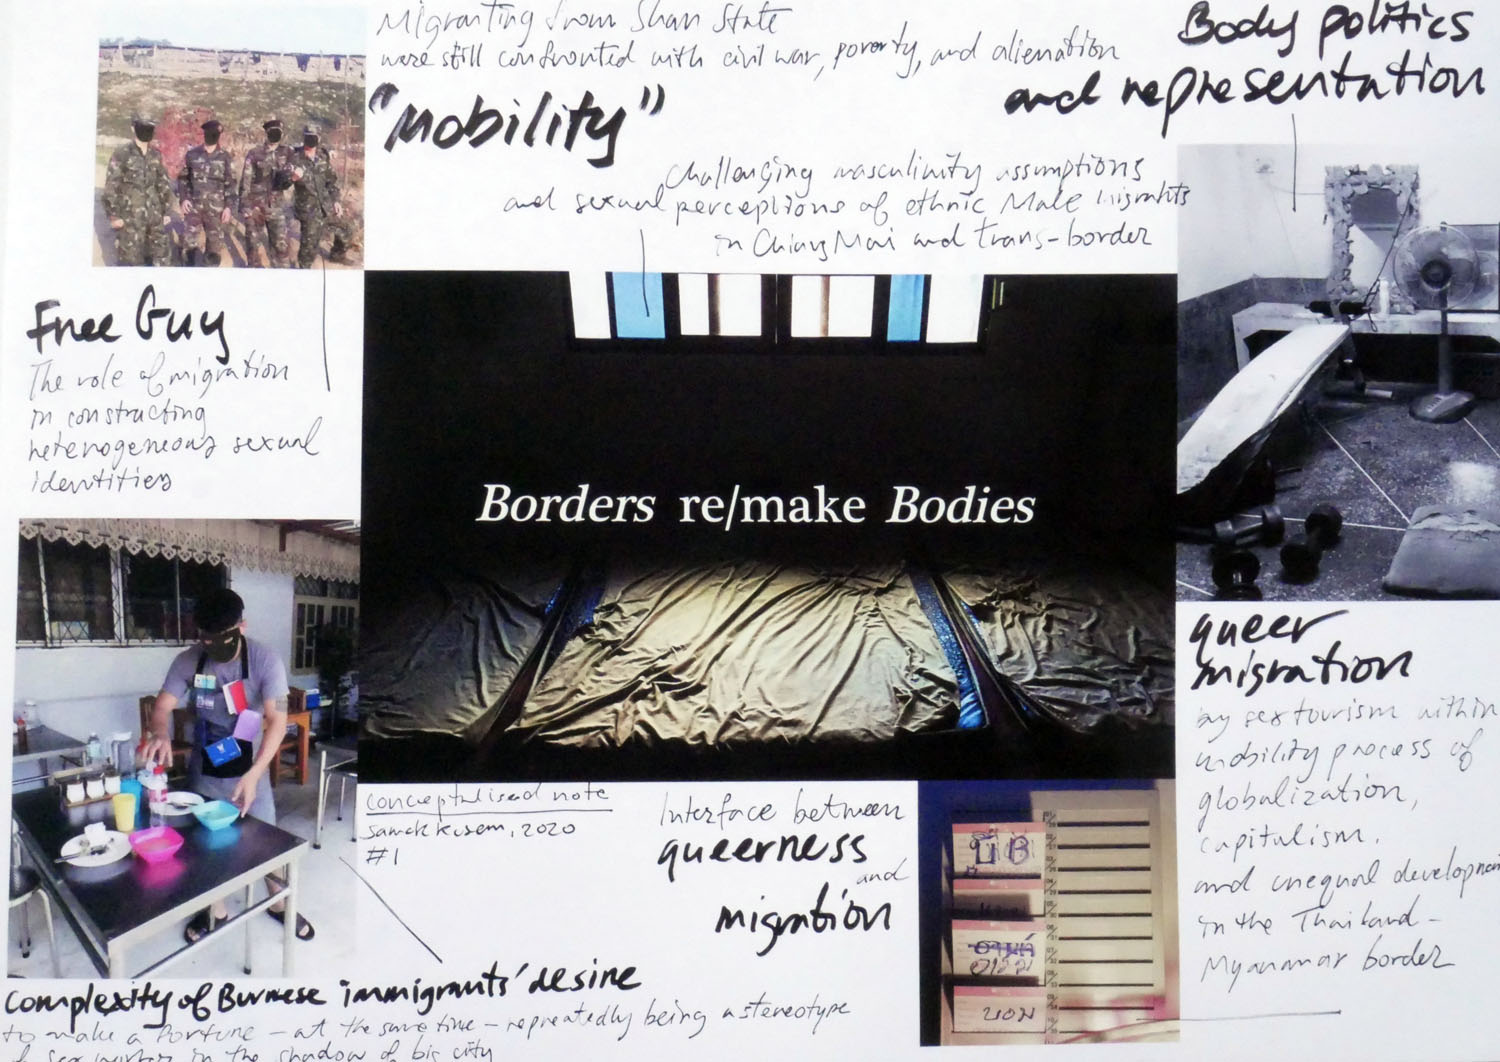 Borders re/make Bodies; Chiang Mai Ethnography - Conceptualising Borders / Bodies No. 1